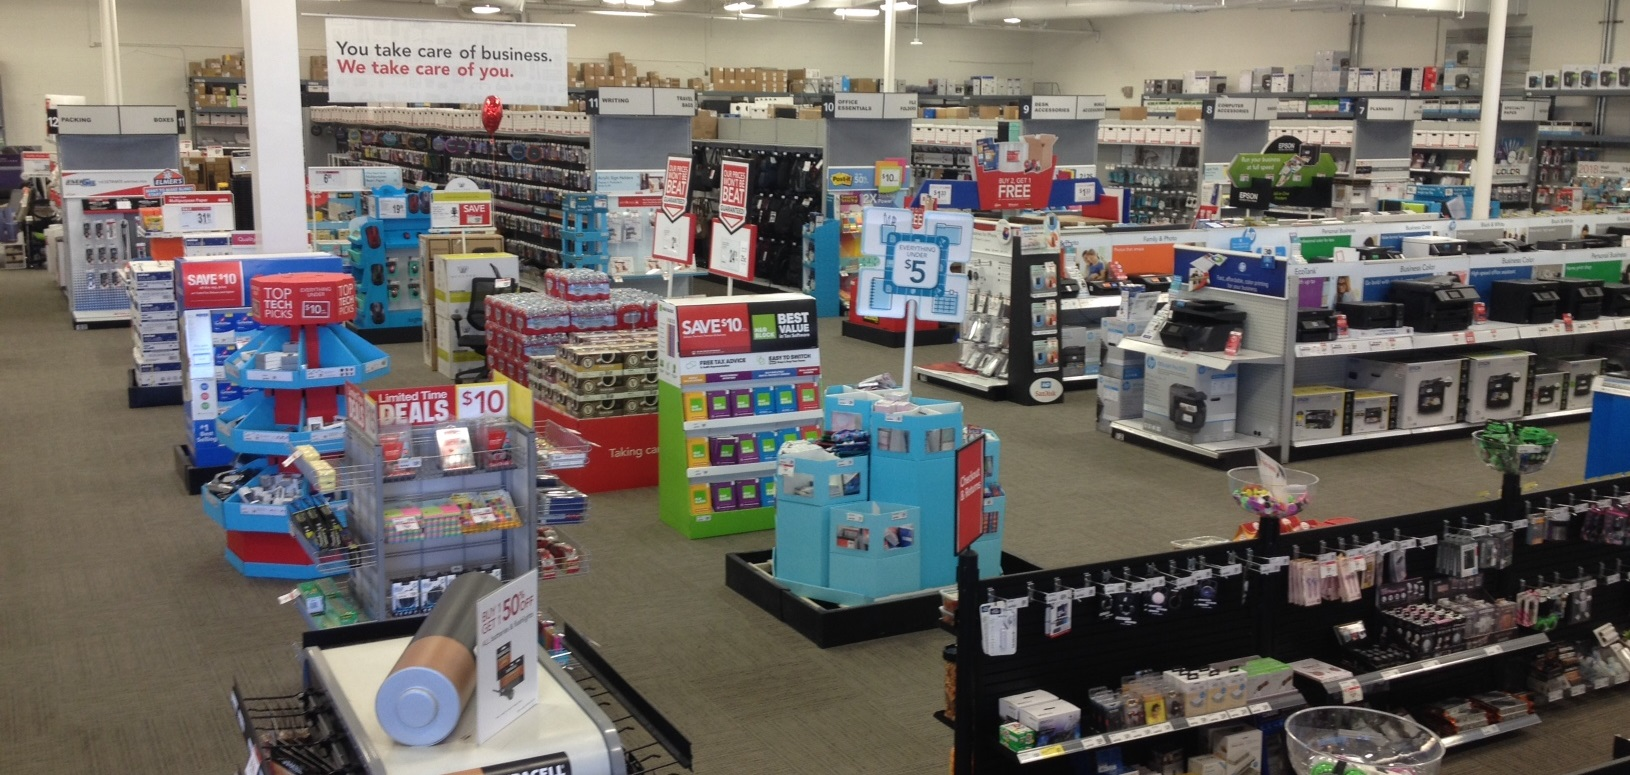 Officemax 478 Bypass 72 Nw Greenwood Sc 29649 Ypcom